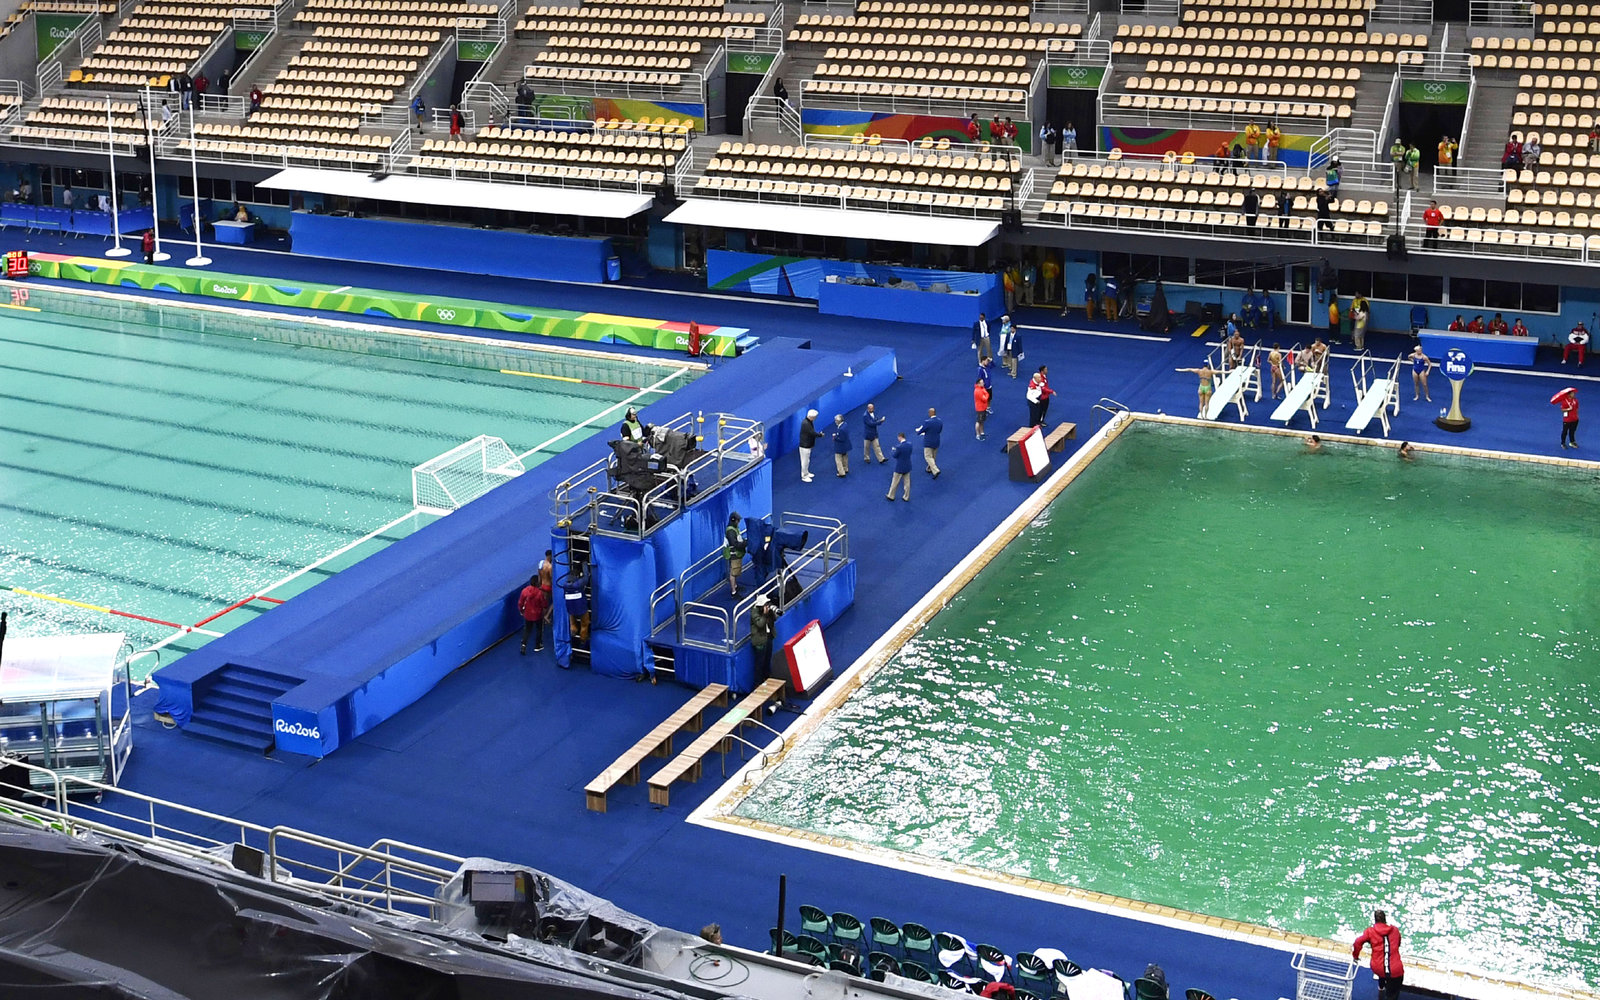 Here's Why the Water in the Rio Olympics Diving Pool Turned Green